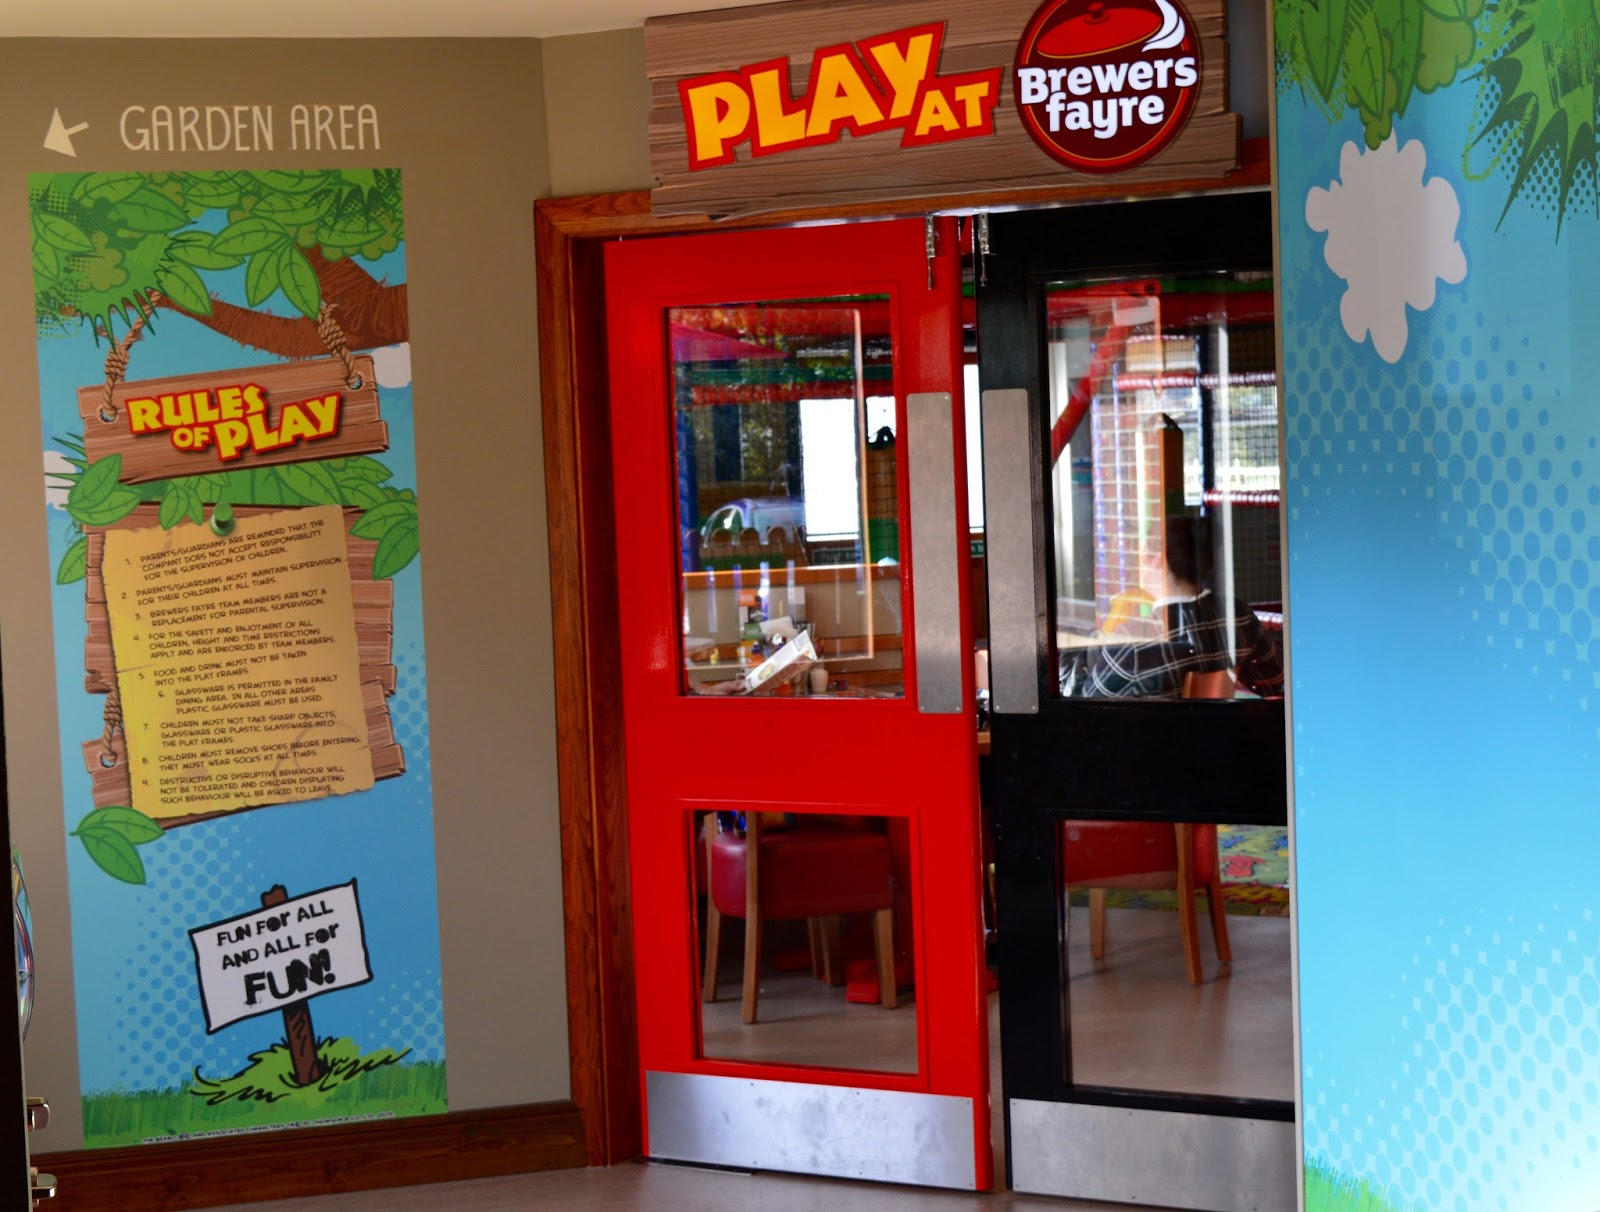 Derwent Crossing Brewers Fayre near intu Metrocentre | Play Area & Children's Menu Review - play area entrance